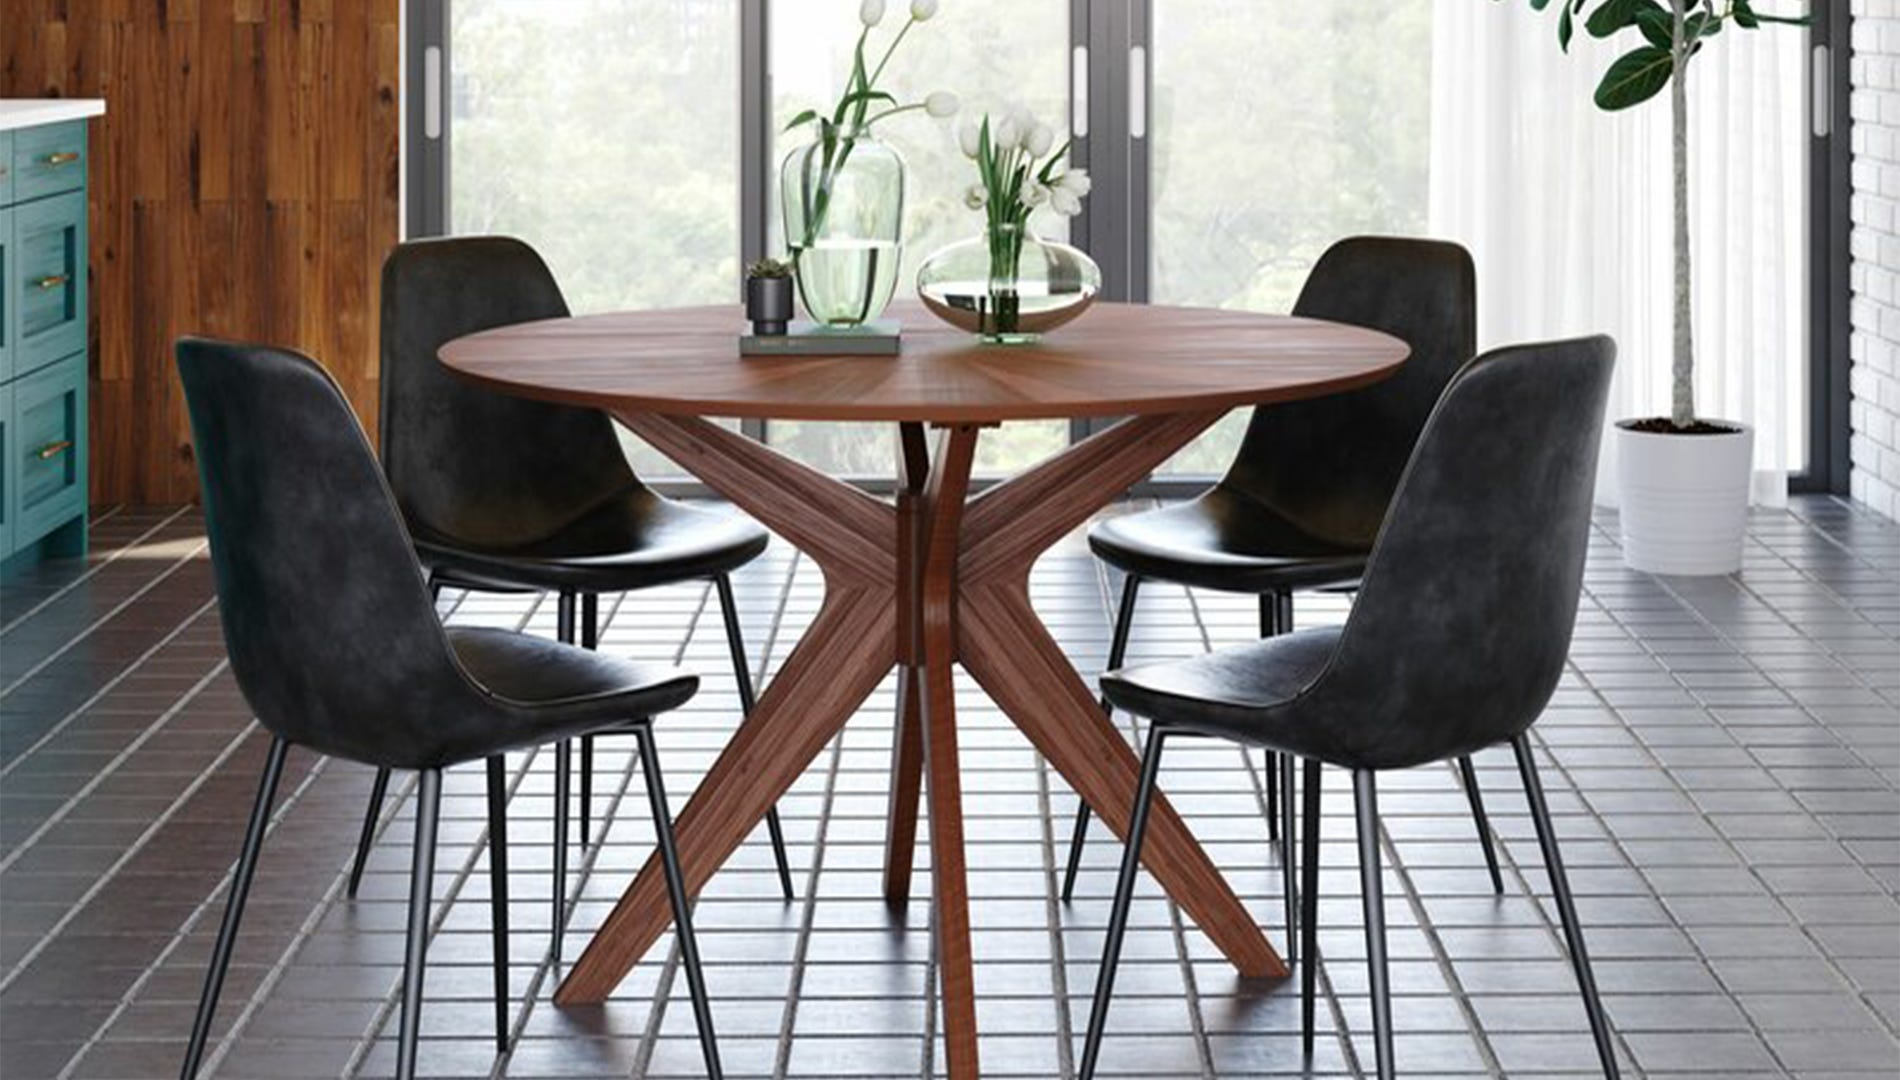 Way Day 2021 The Best Deals From, Wayfair Dining Room Storage Cabinets